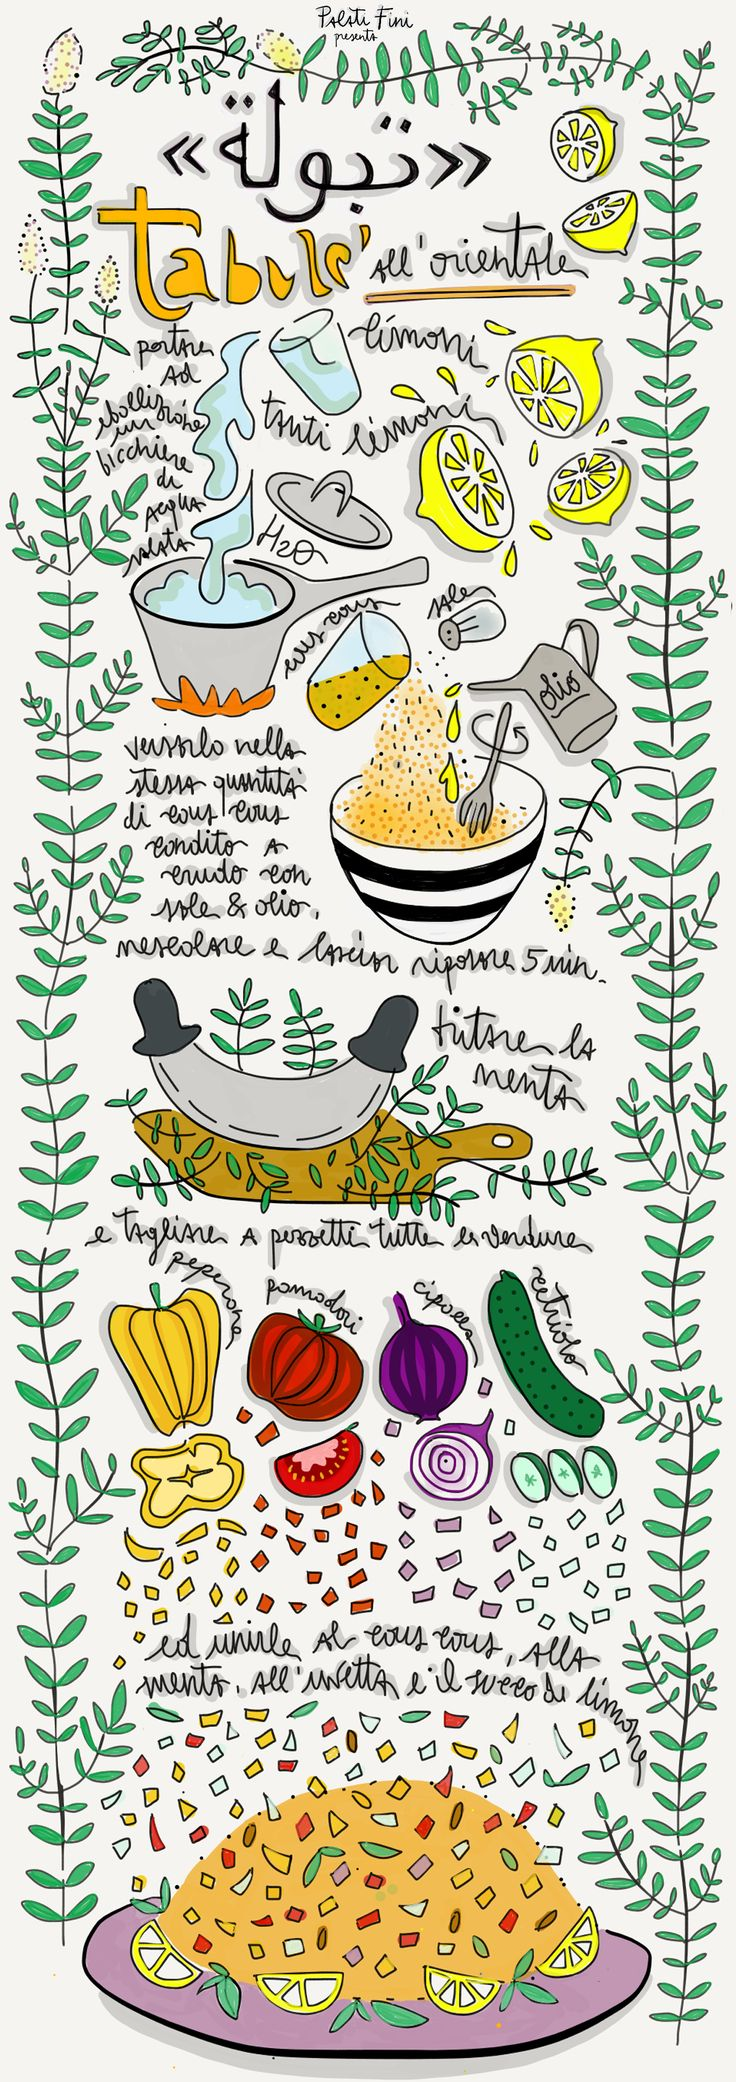 tabbouleh cous cous illustrated recipe food illustration